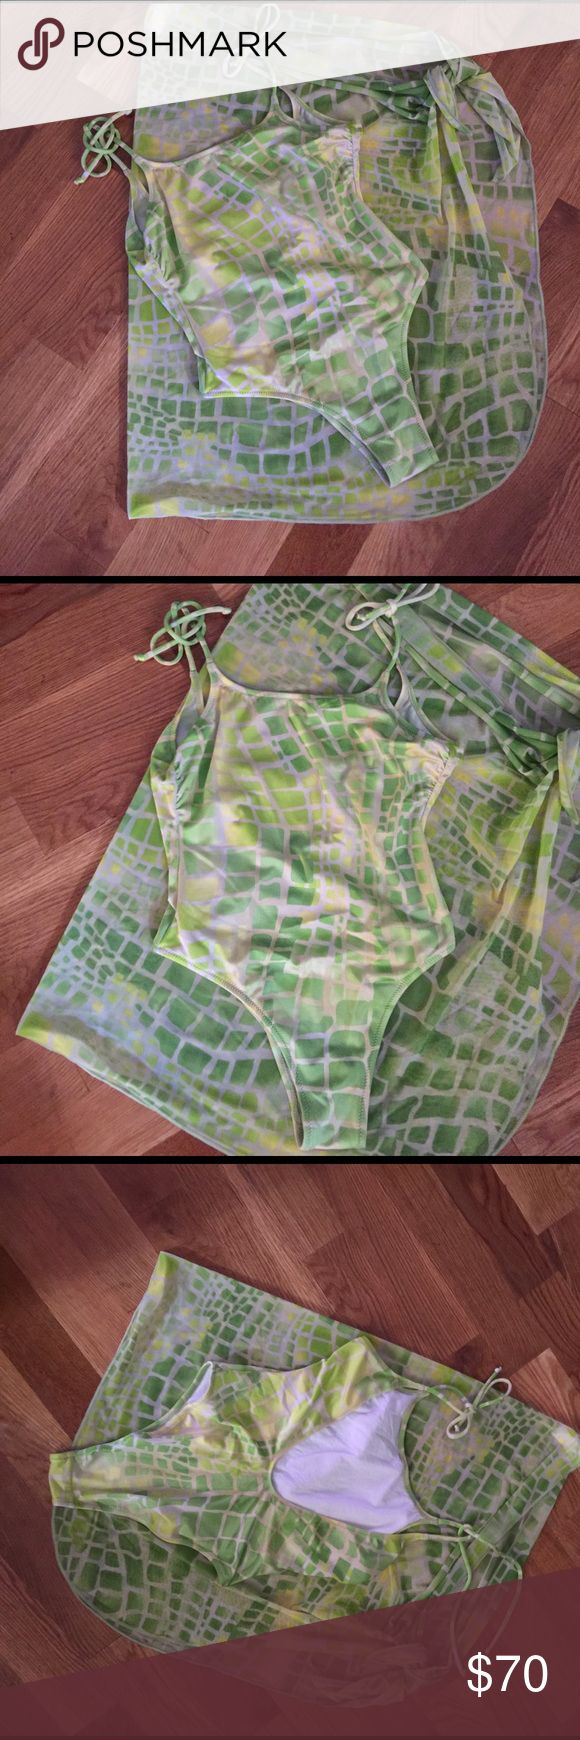 LA Perla one piece swimsuit and matching sarong 🌞 Summer is almost here🌞 Gorgeous Lime green one piece swimsuit and sarong by La Perla size 42 us 2-4 La Perla Swim One Pieces